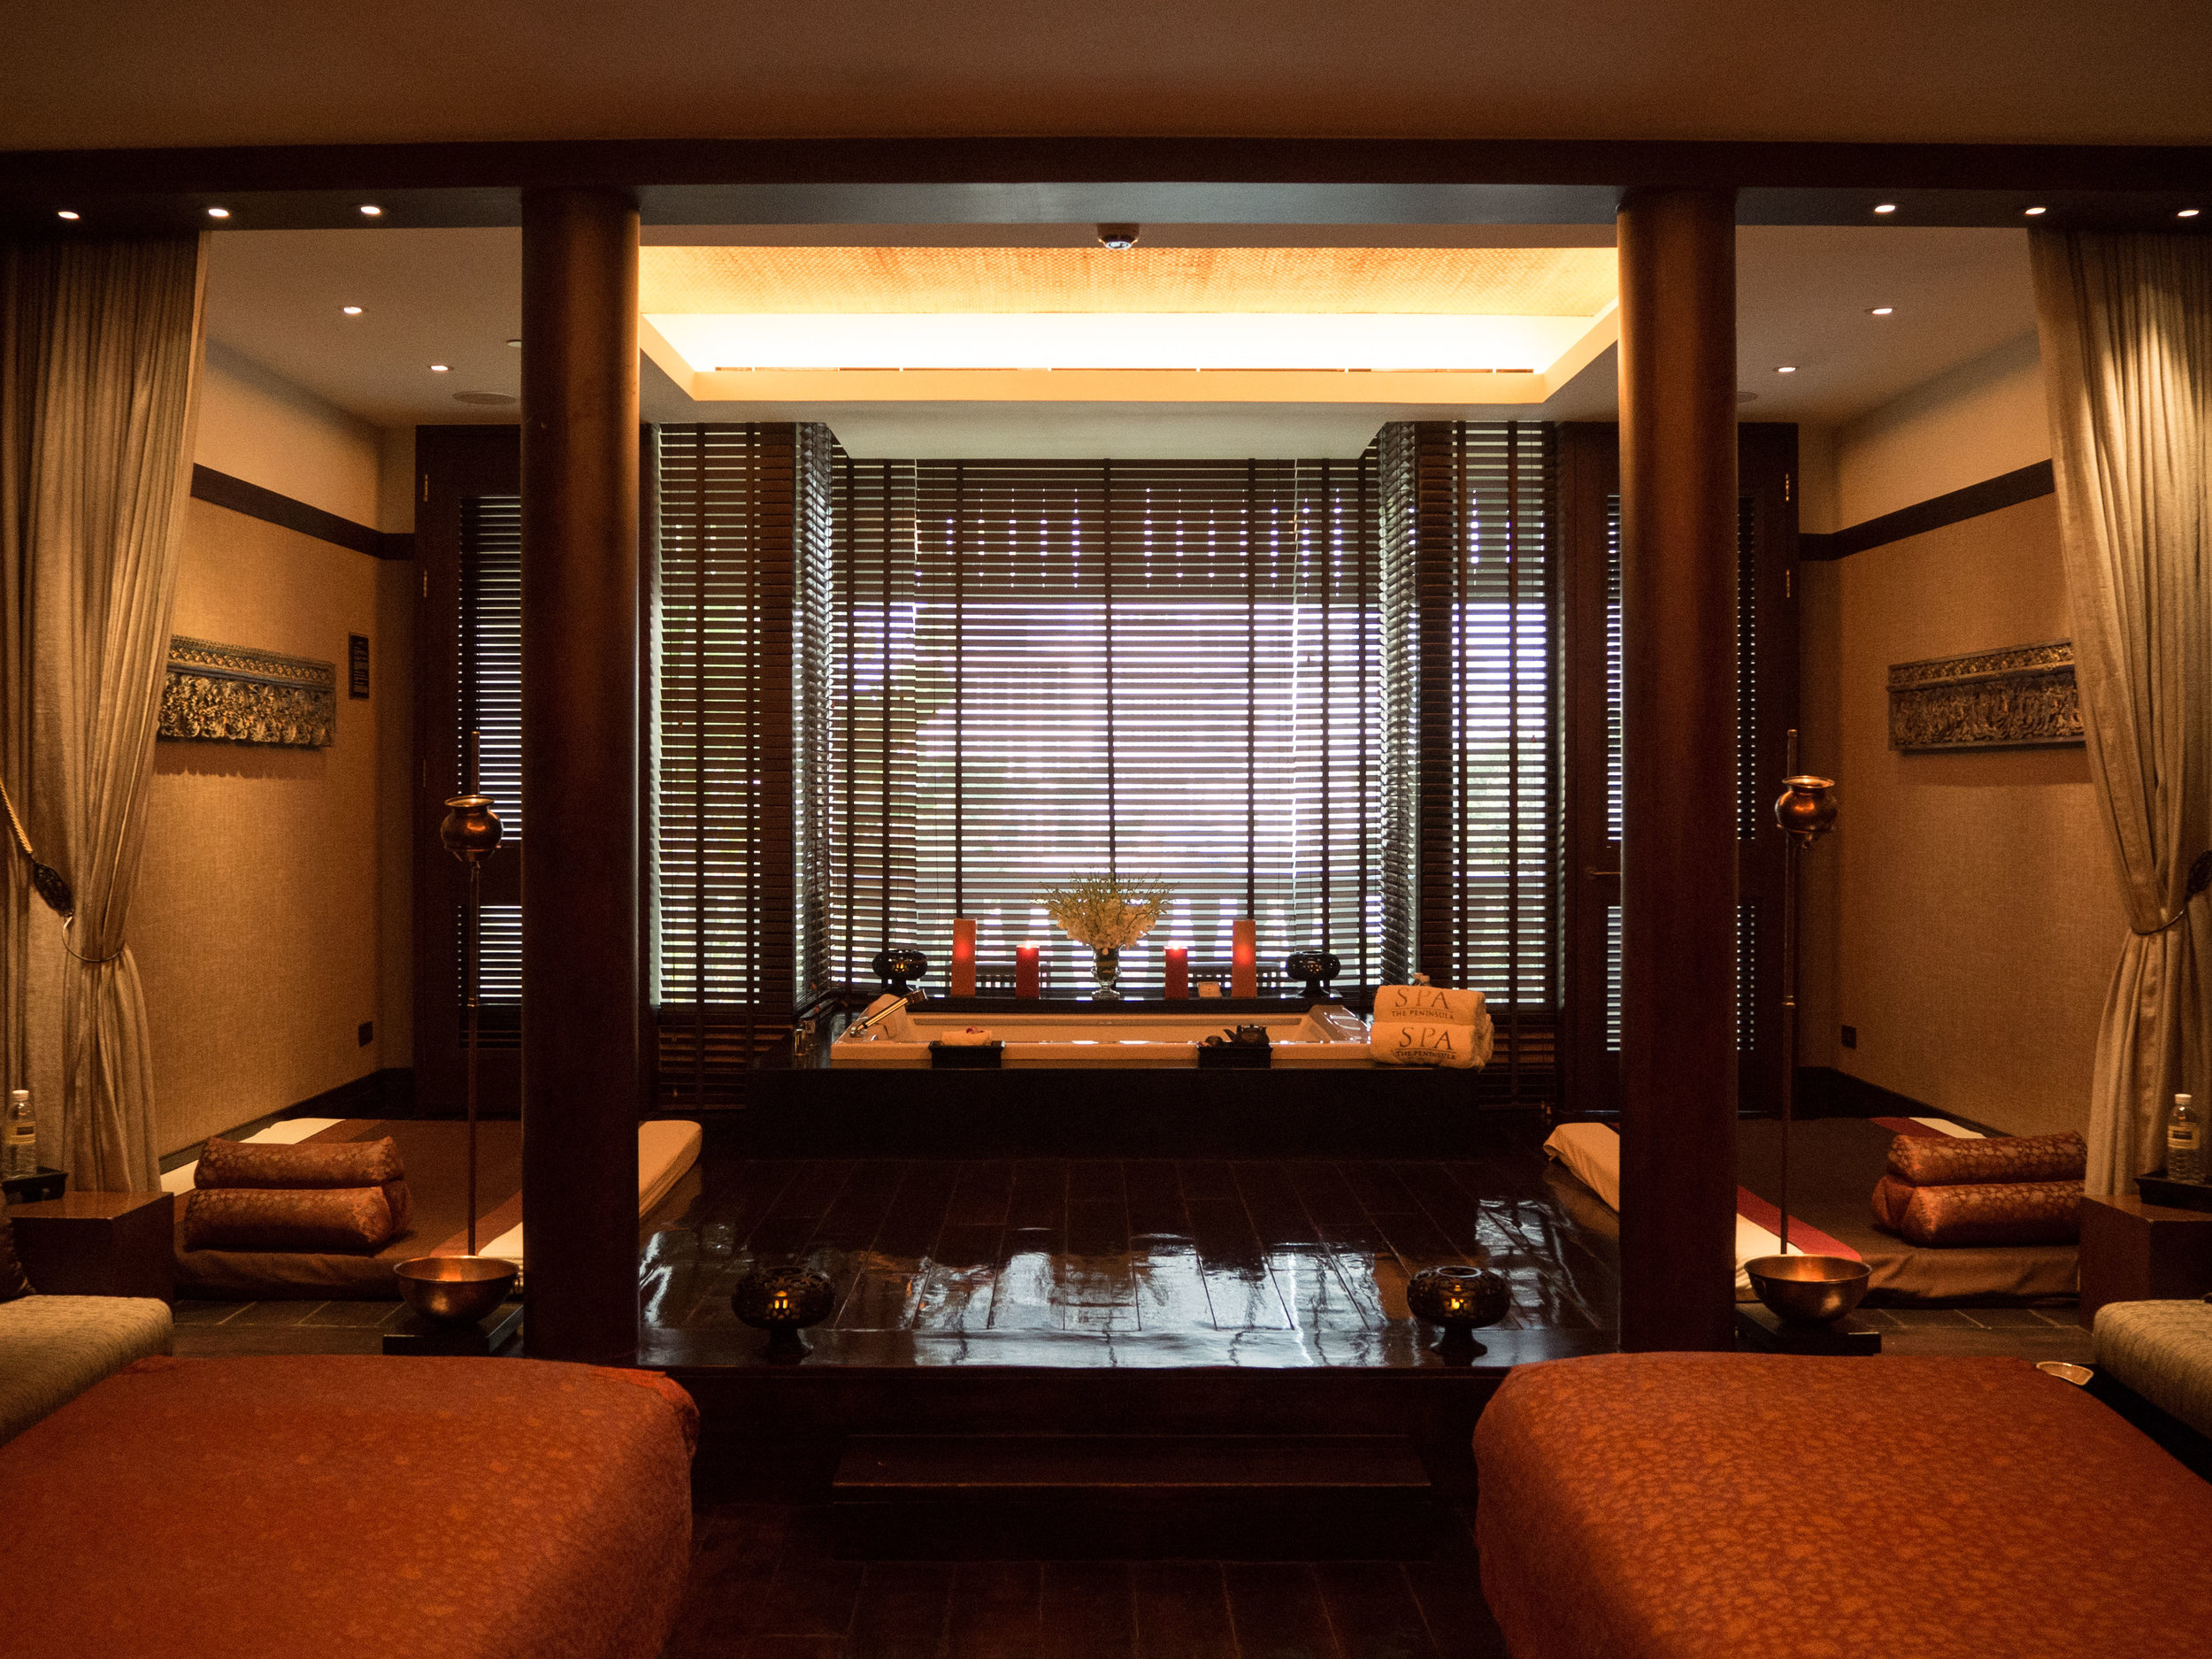 The River View Suite at The Spa, The Peninsula